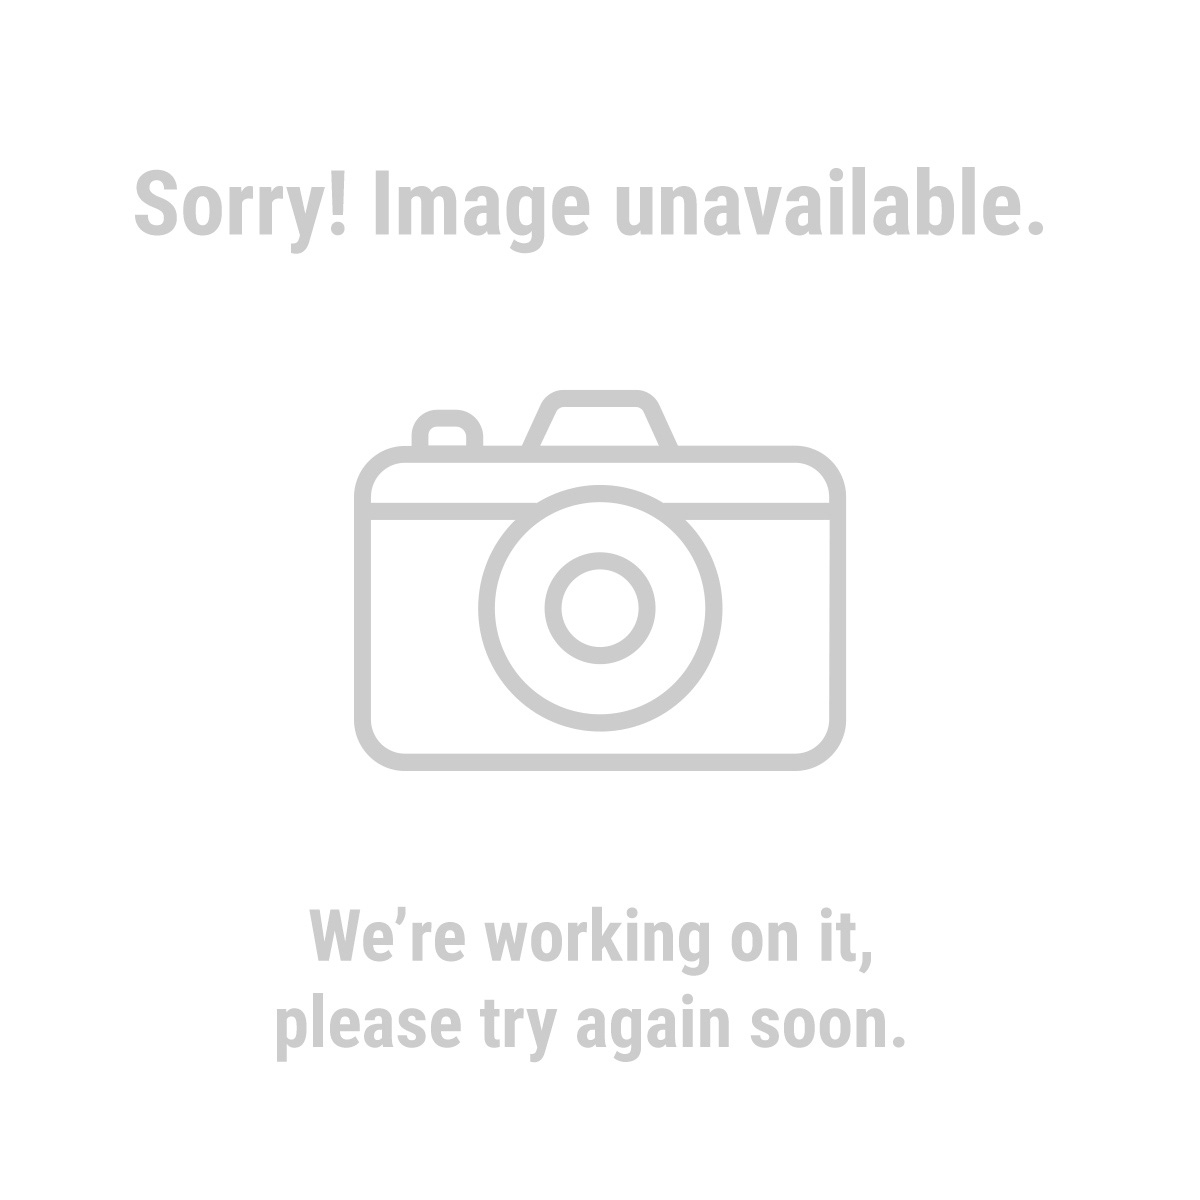 "Chicago Electric Welding 42916 0.030"" ER70S-6  Carbon Steel Welding Wire, 2 Lb. Roll"